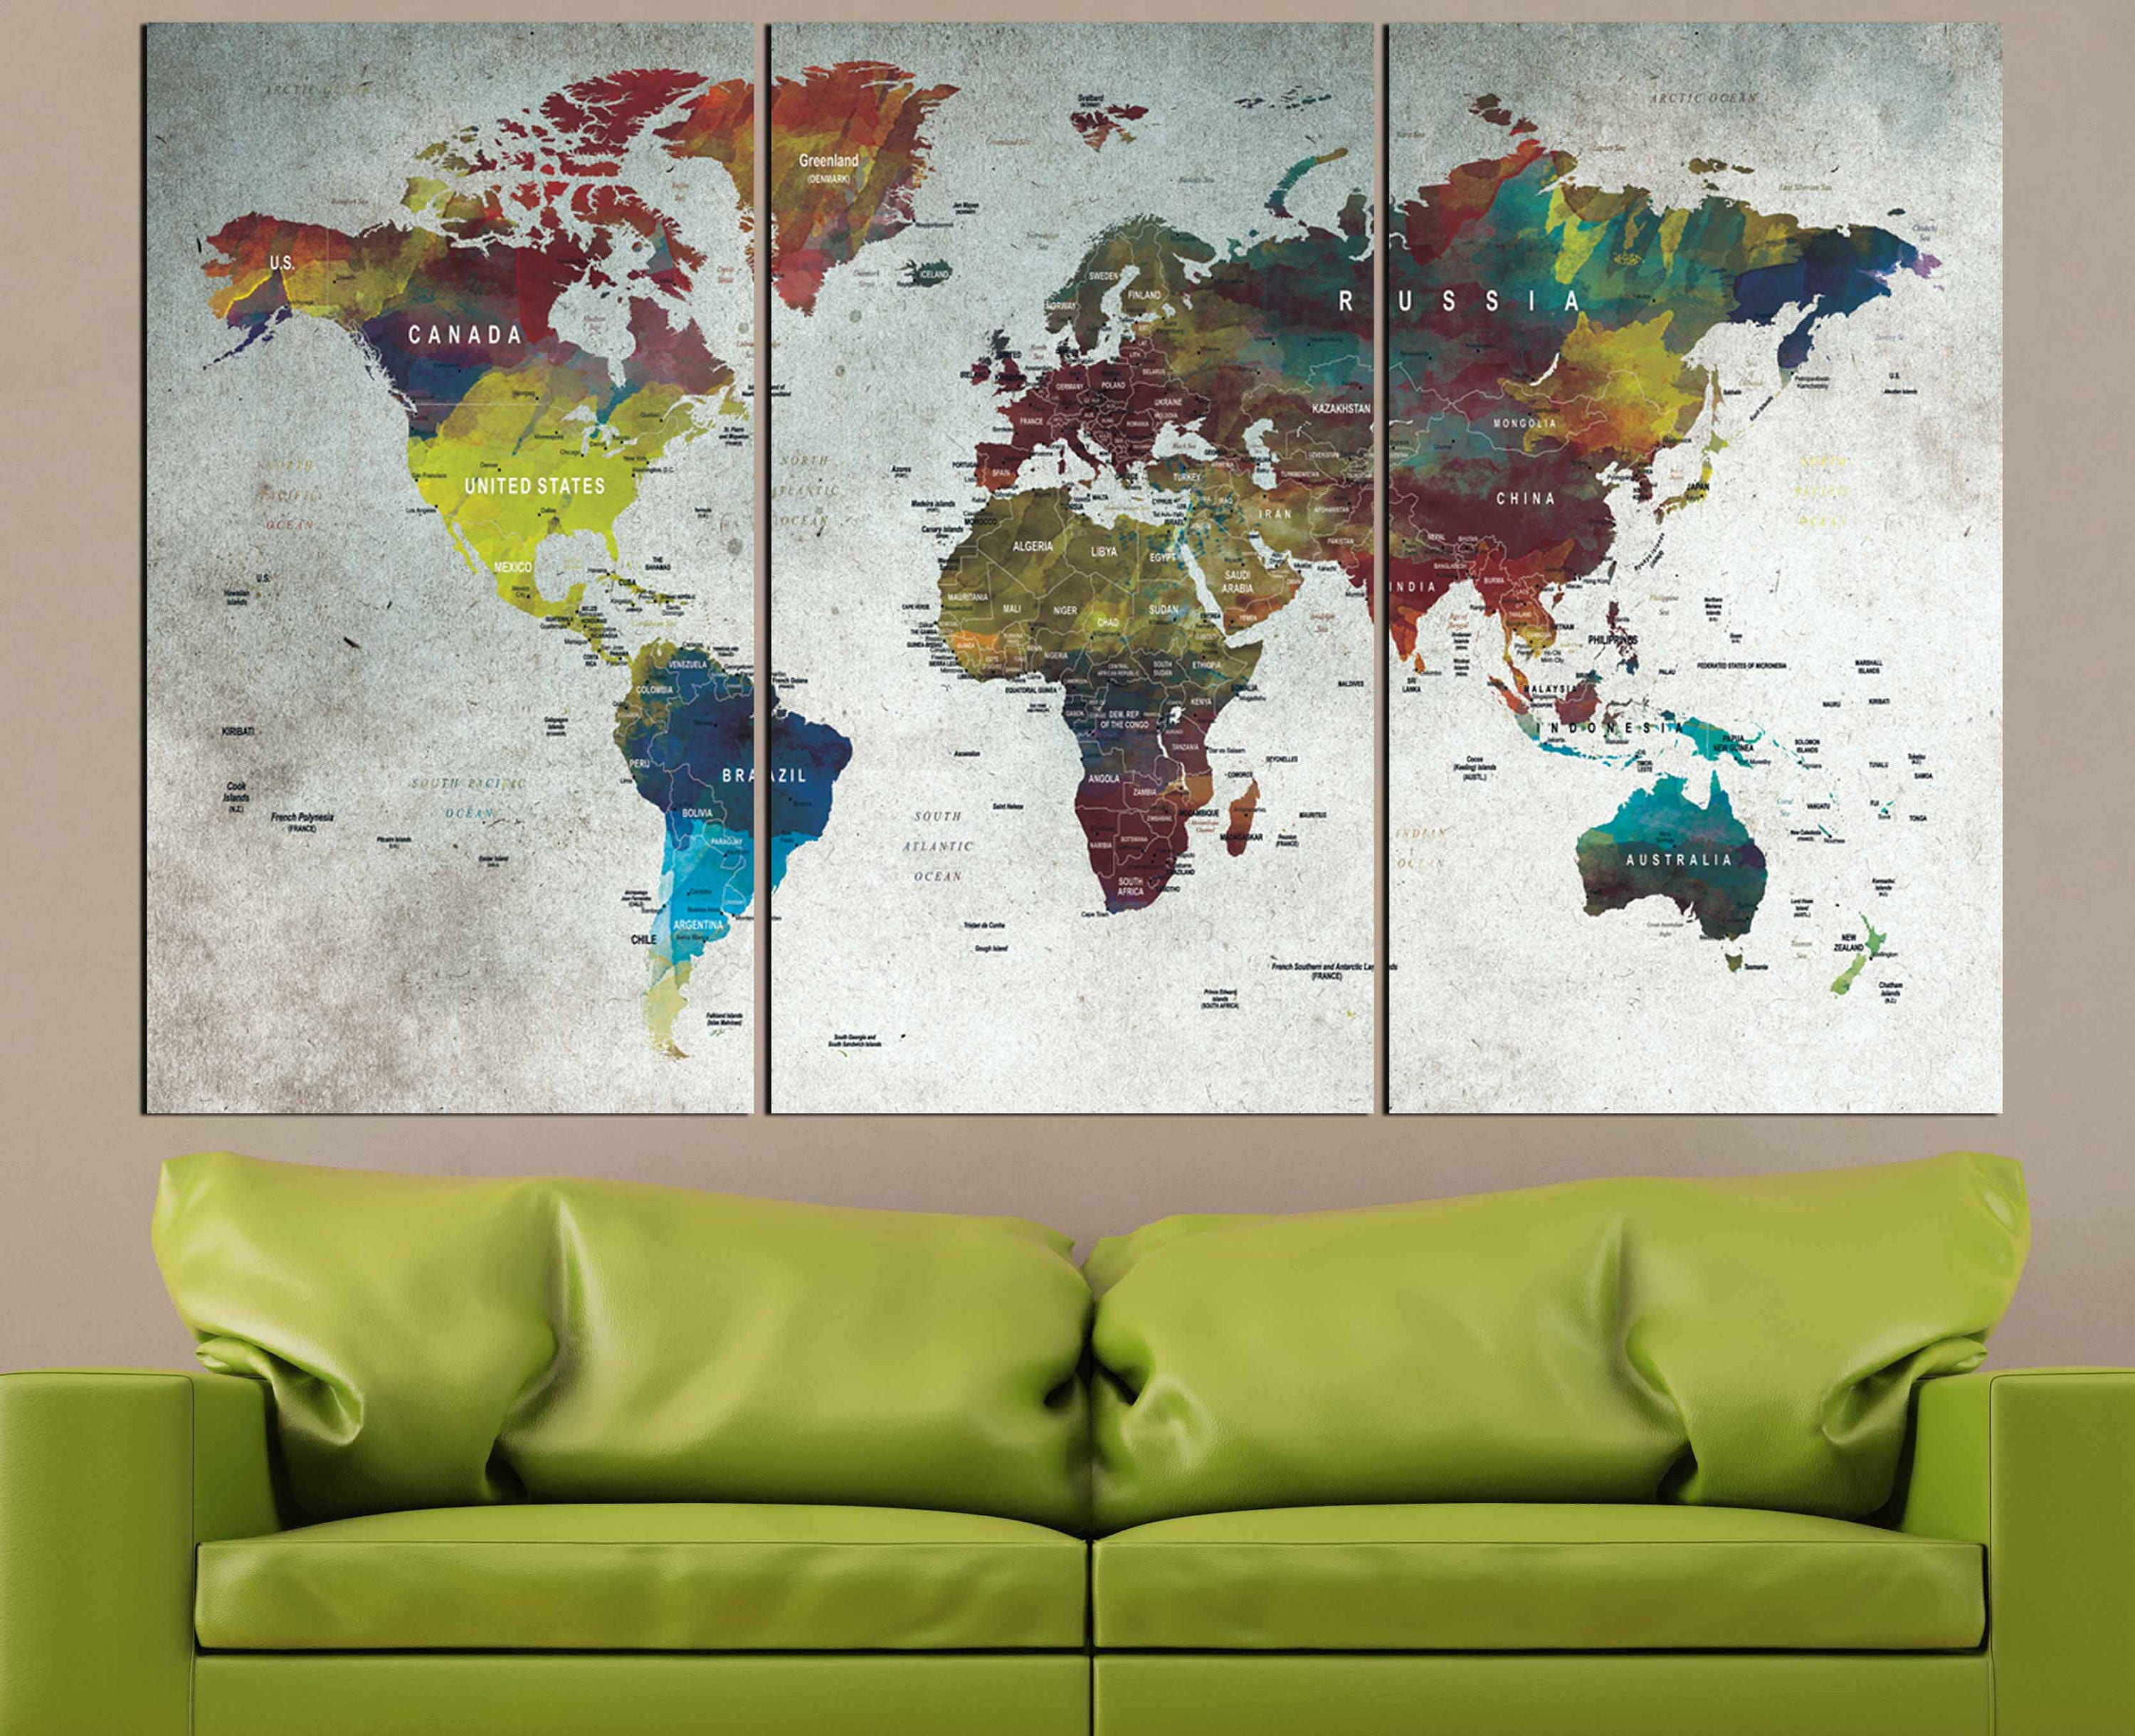 world mapmapwall artlarge world mappush pin mapabstract world mappush pin map canvas artworld travel mapmap canvas